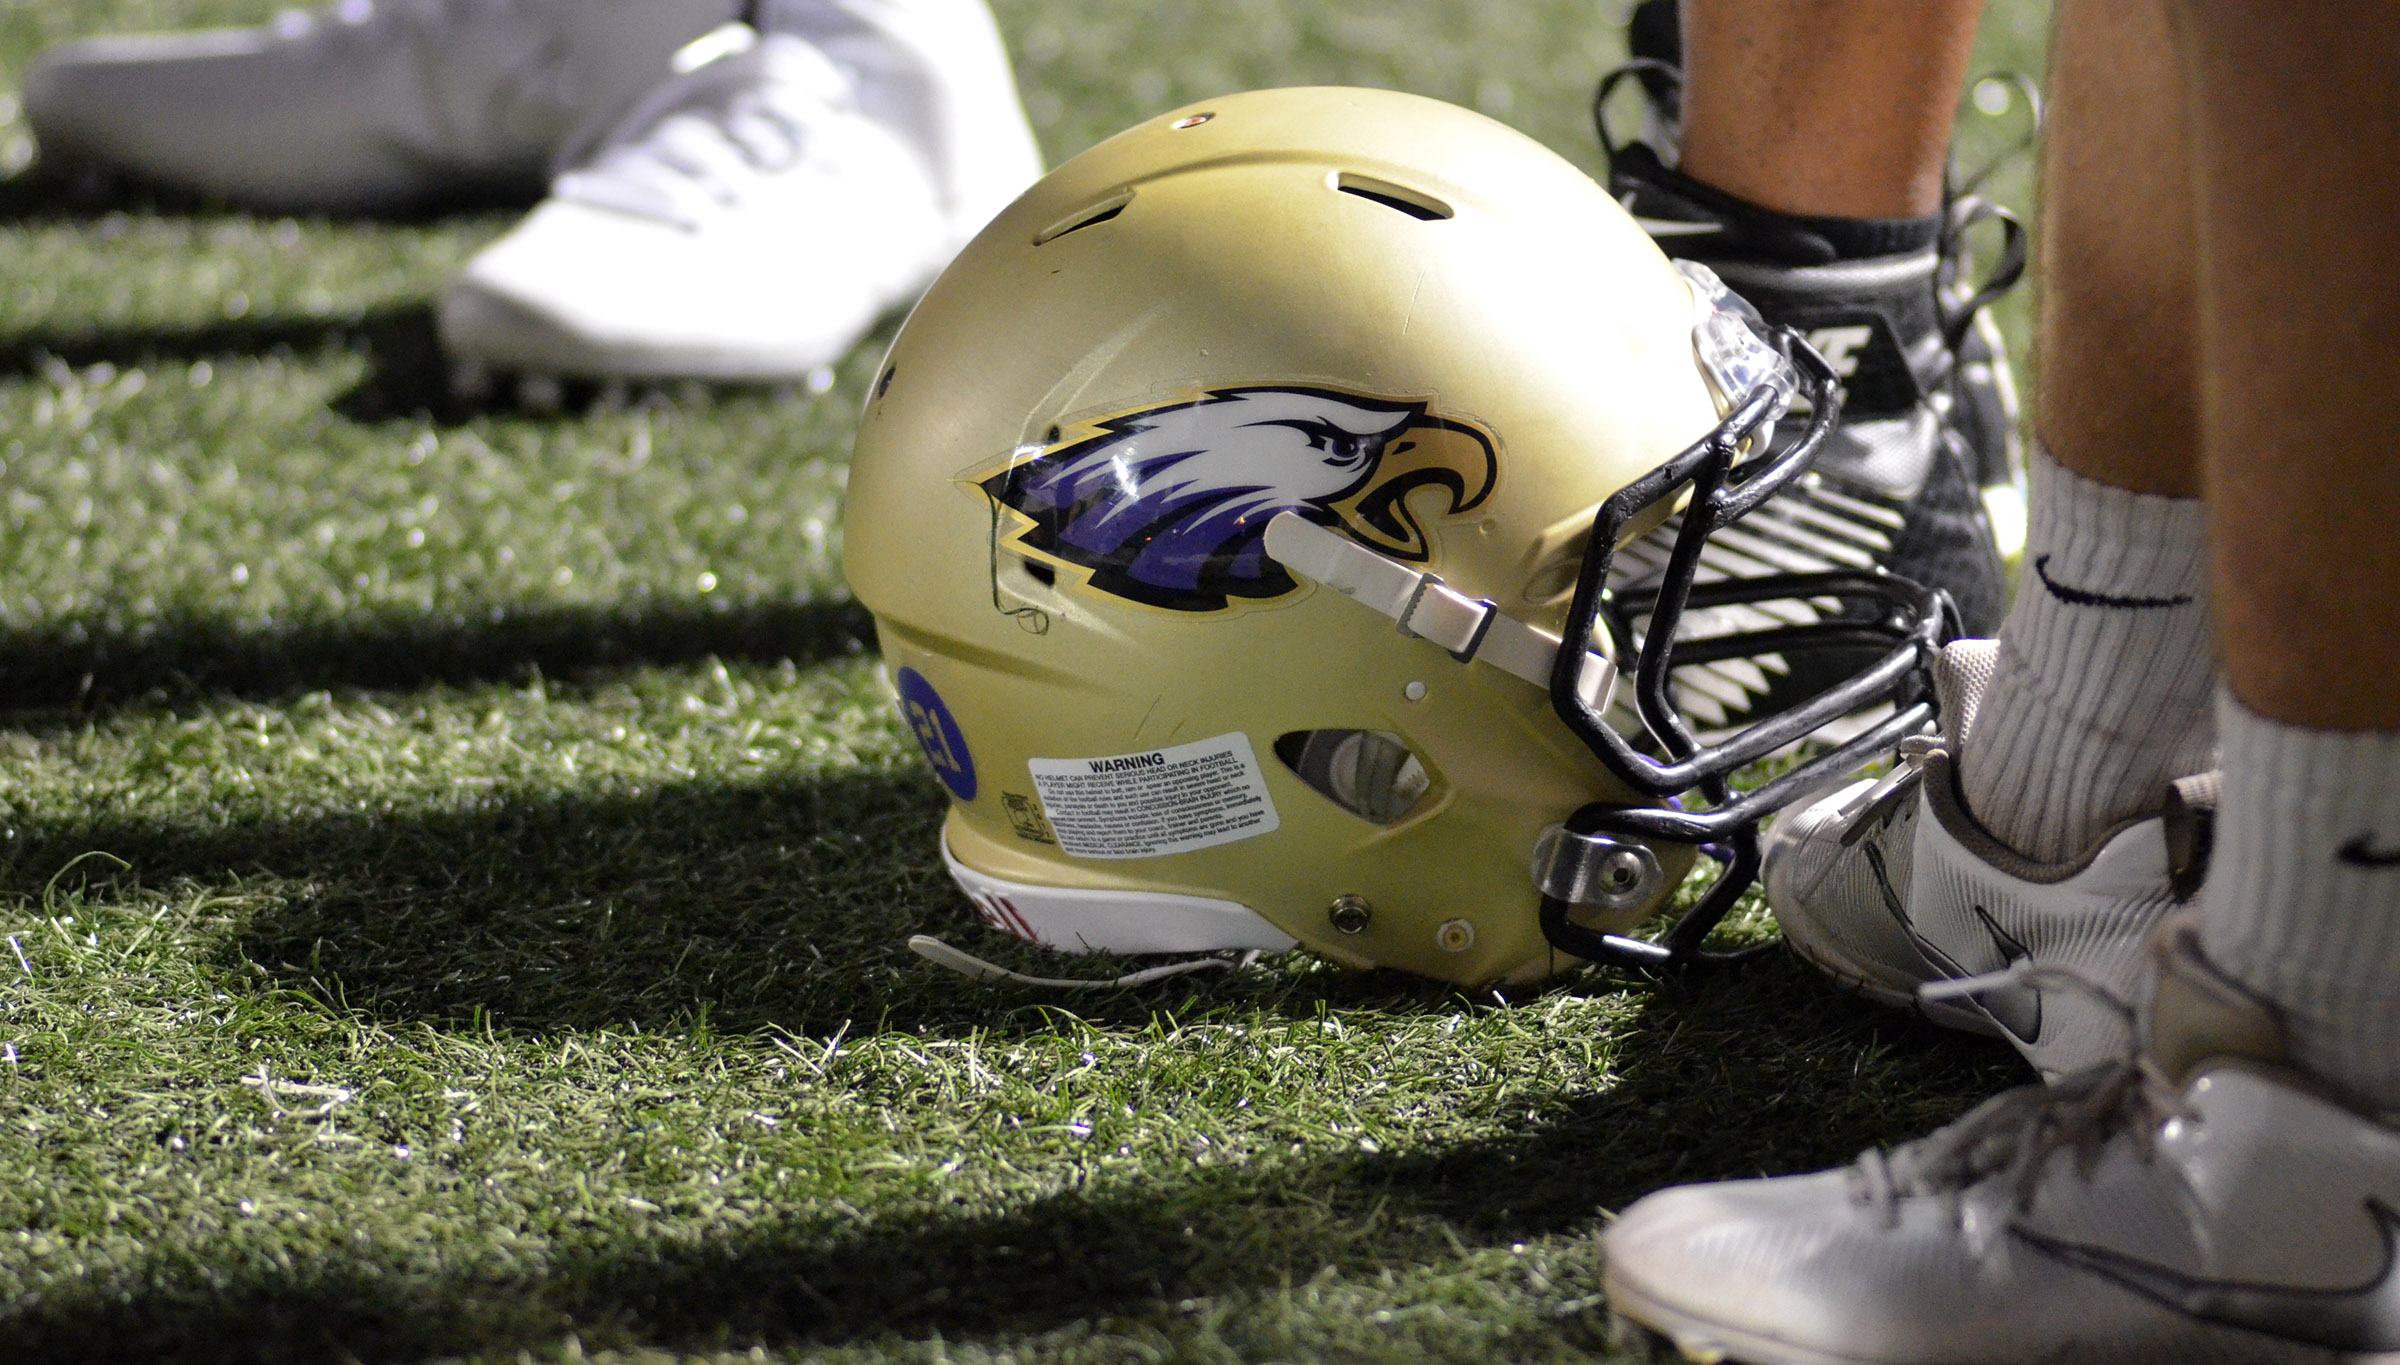 A CHS football helmet sits on the ground during a play.